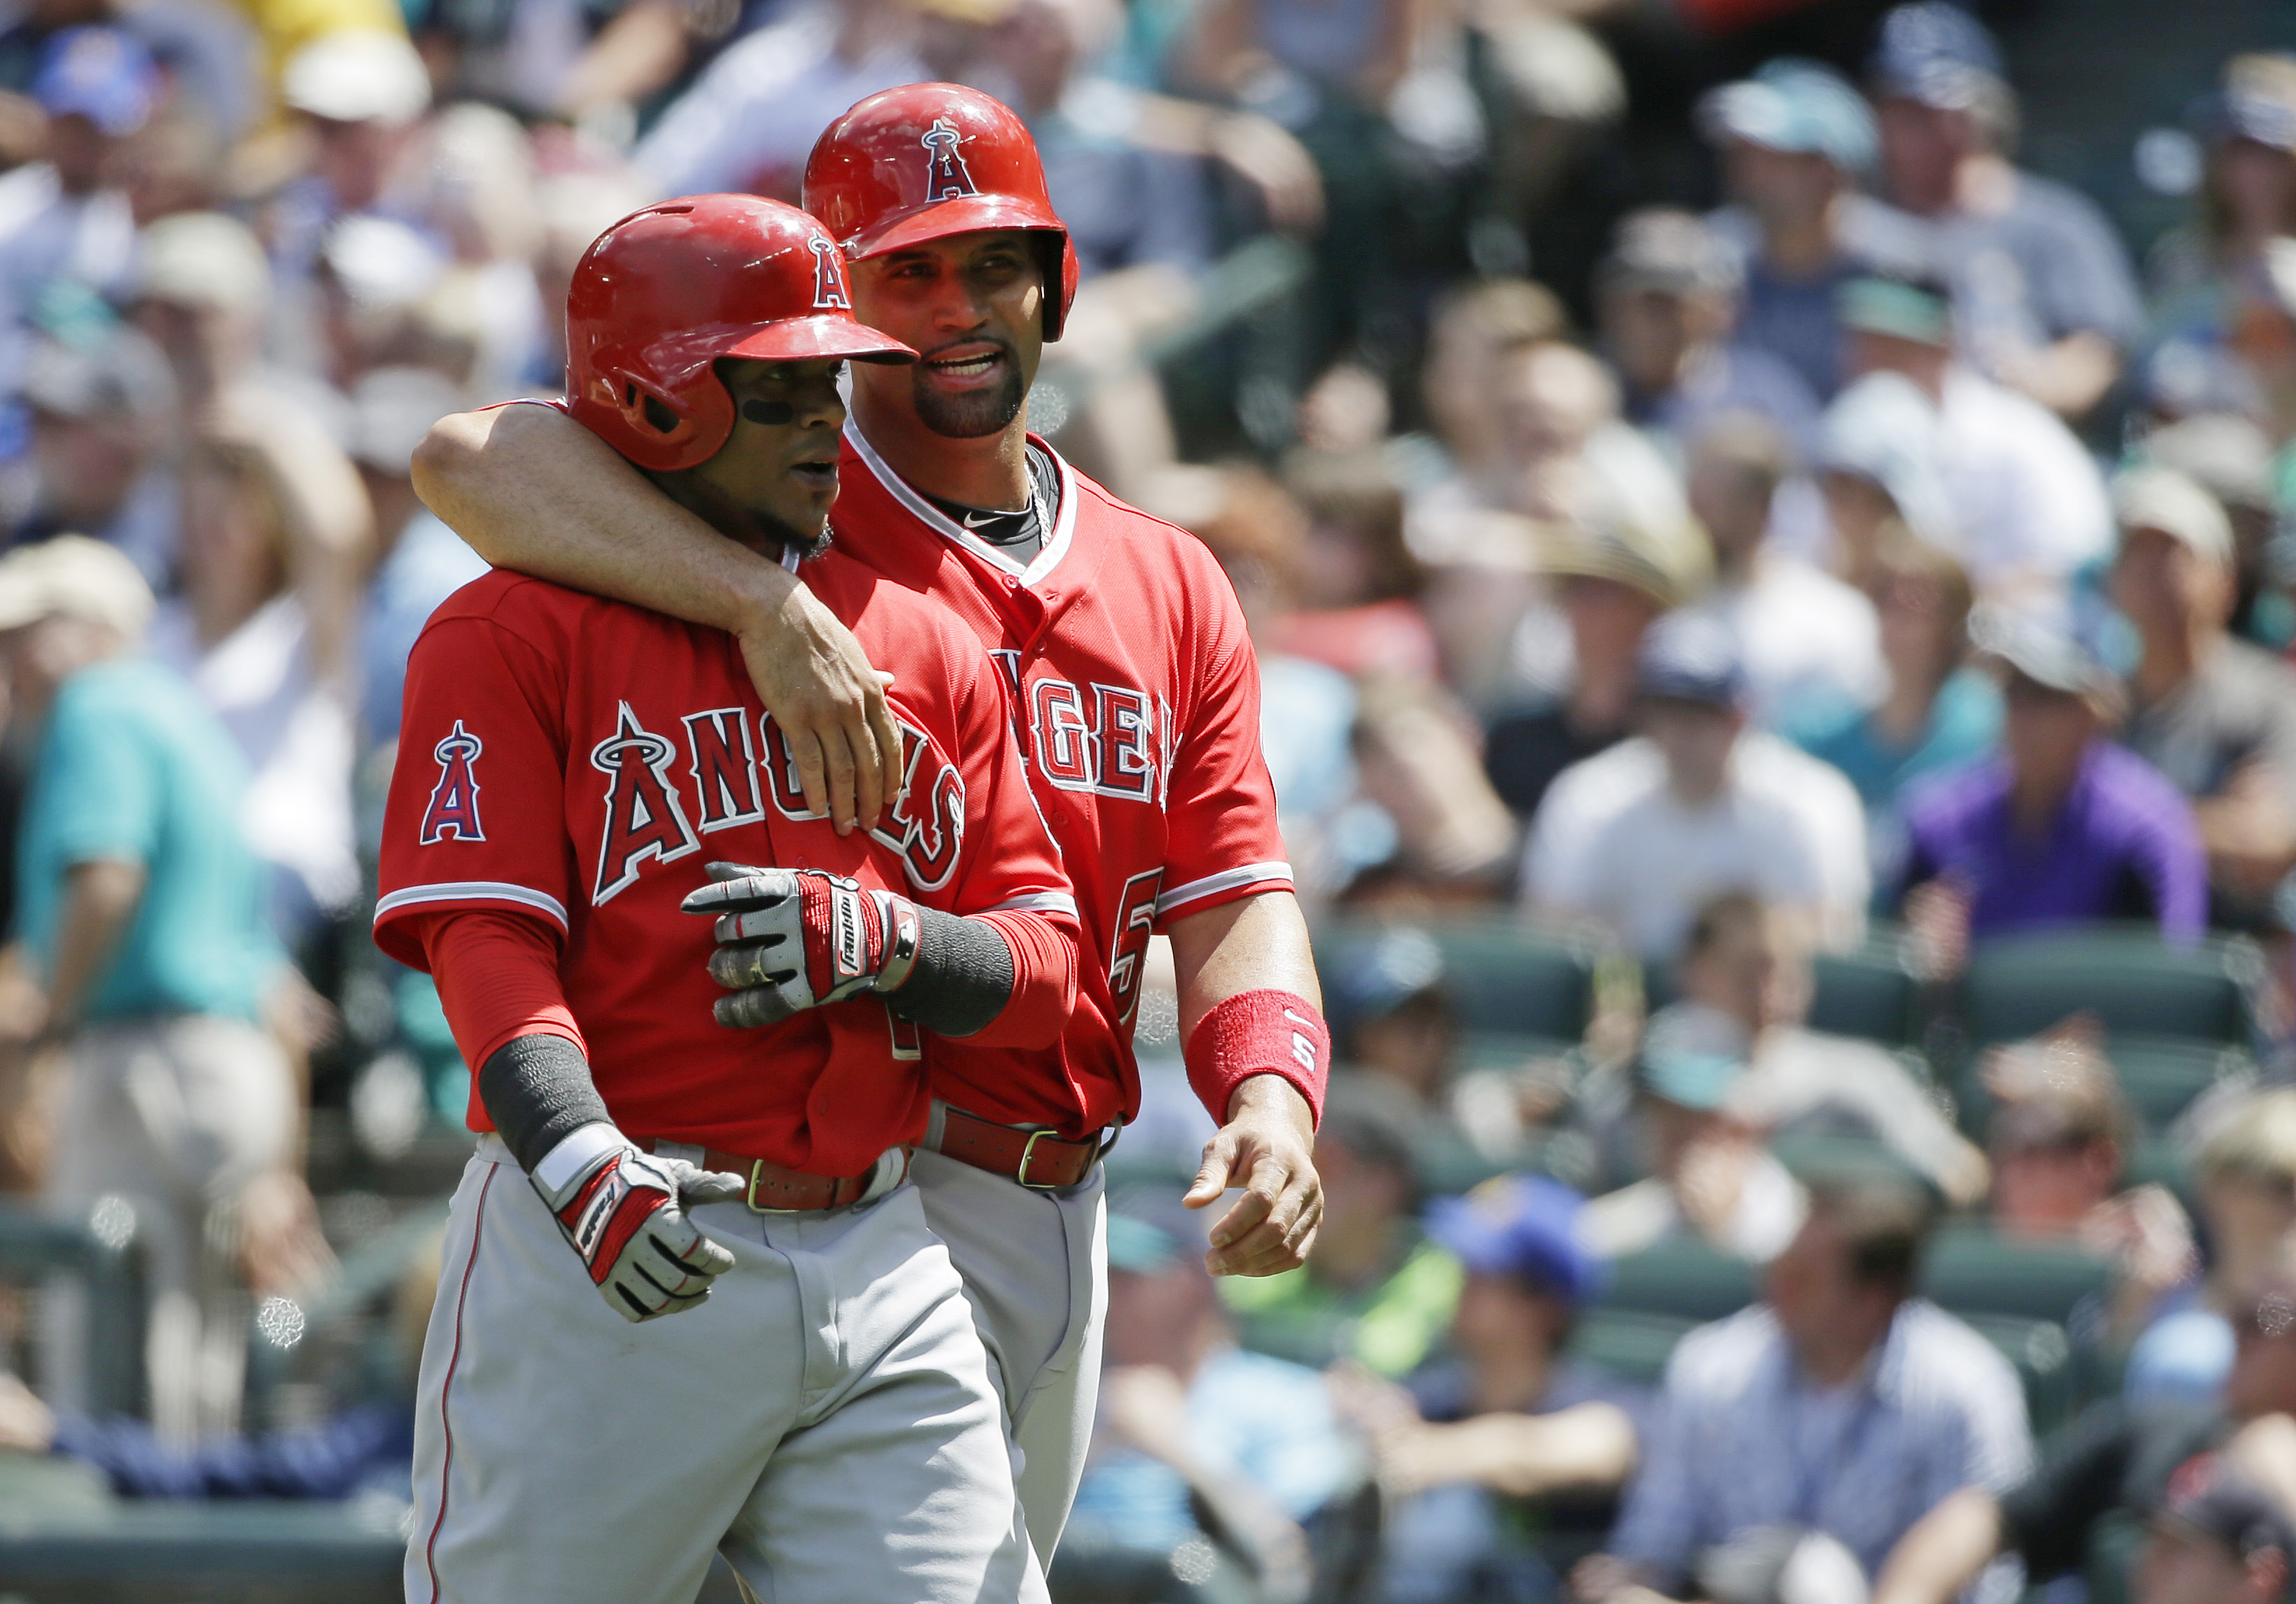 Los Angeles Angels' Albert Pujols, right, walks with Erick Aybar, left, after they both scored on a double hit by teammate David Freese in the sixth inning of a baseball game against the Seattle Mariners, Sunday, July 12, 2015, in Seattle. (AP Photo/Ted S